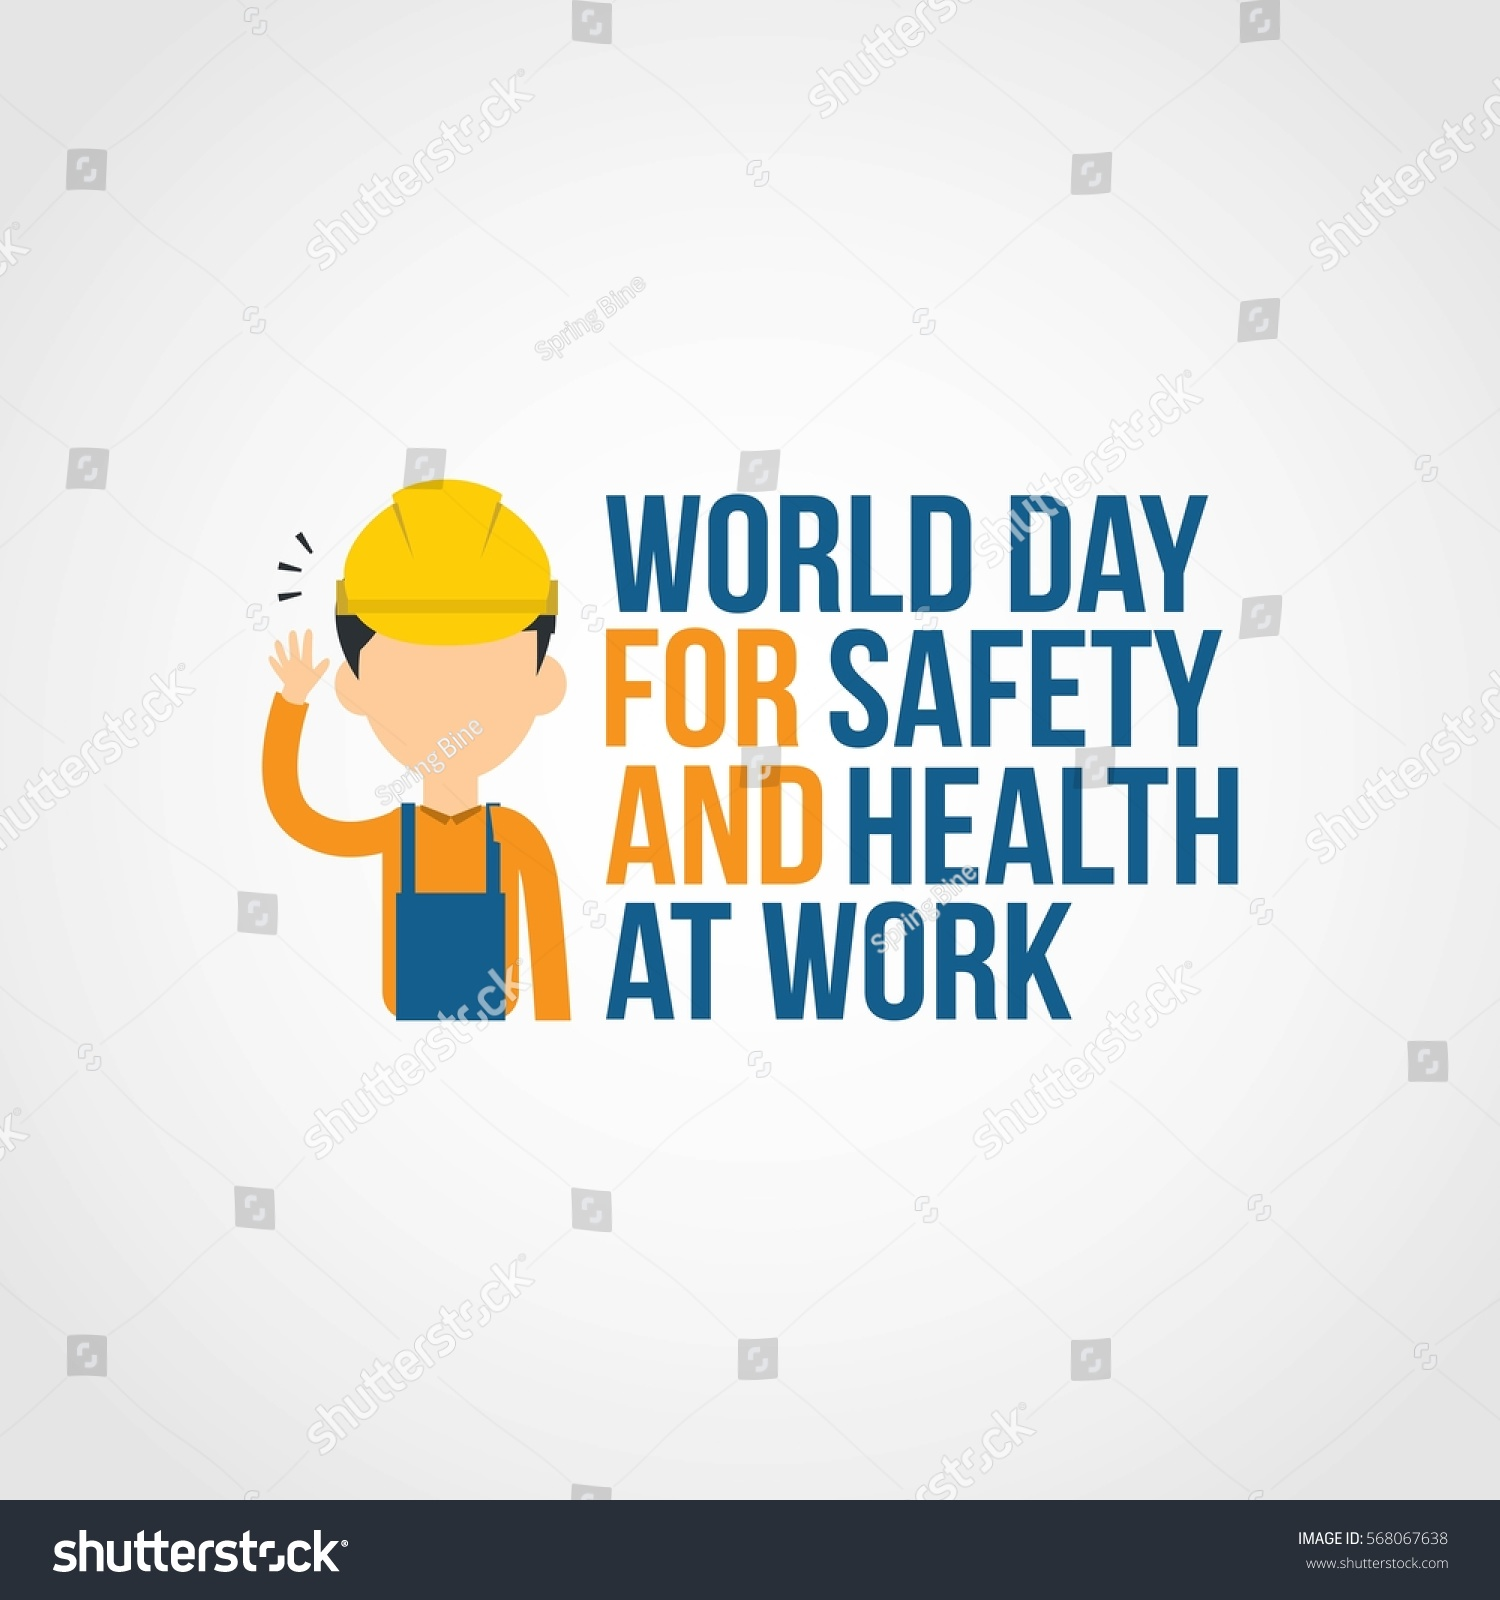 world day safety health work vector stock vector 568067638